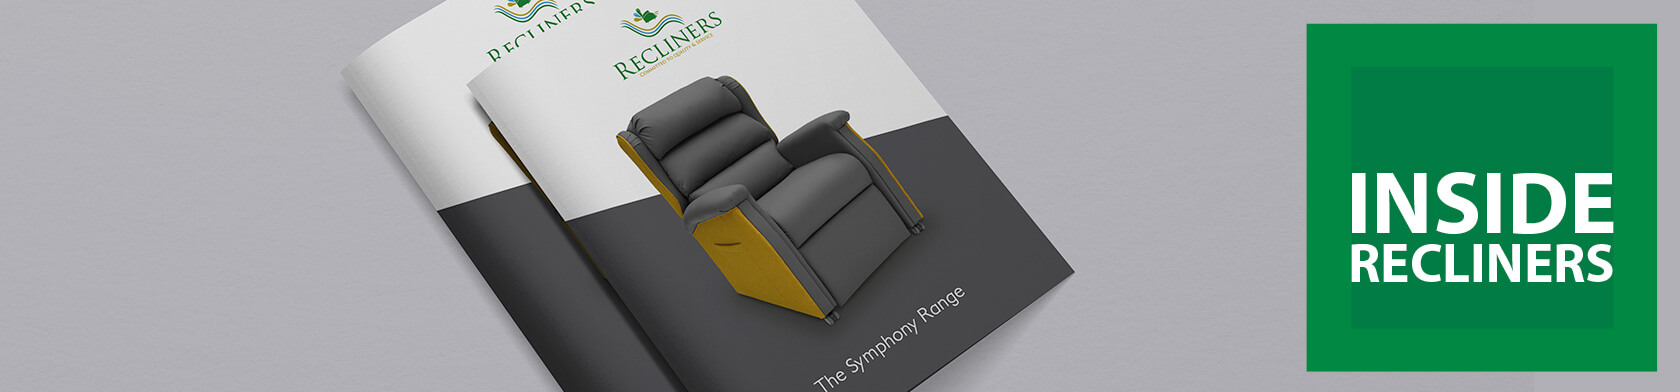 New Recliners Info Guides to be Available Soon